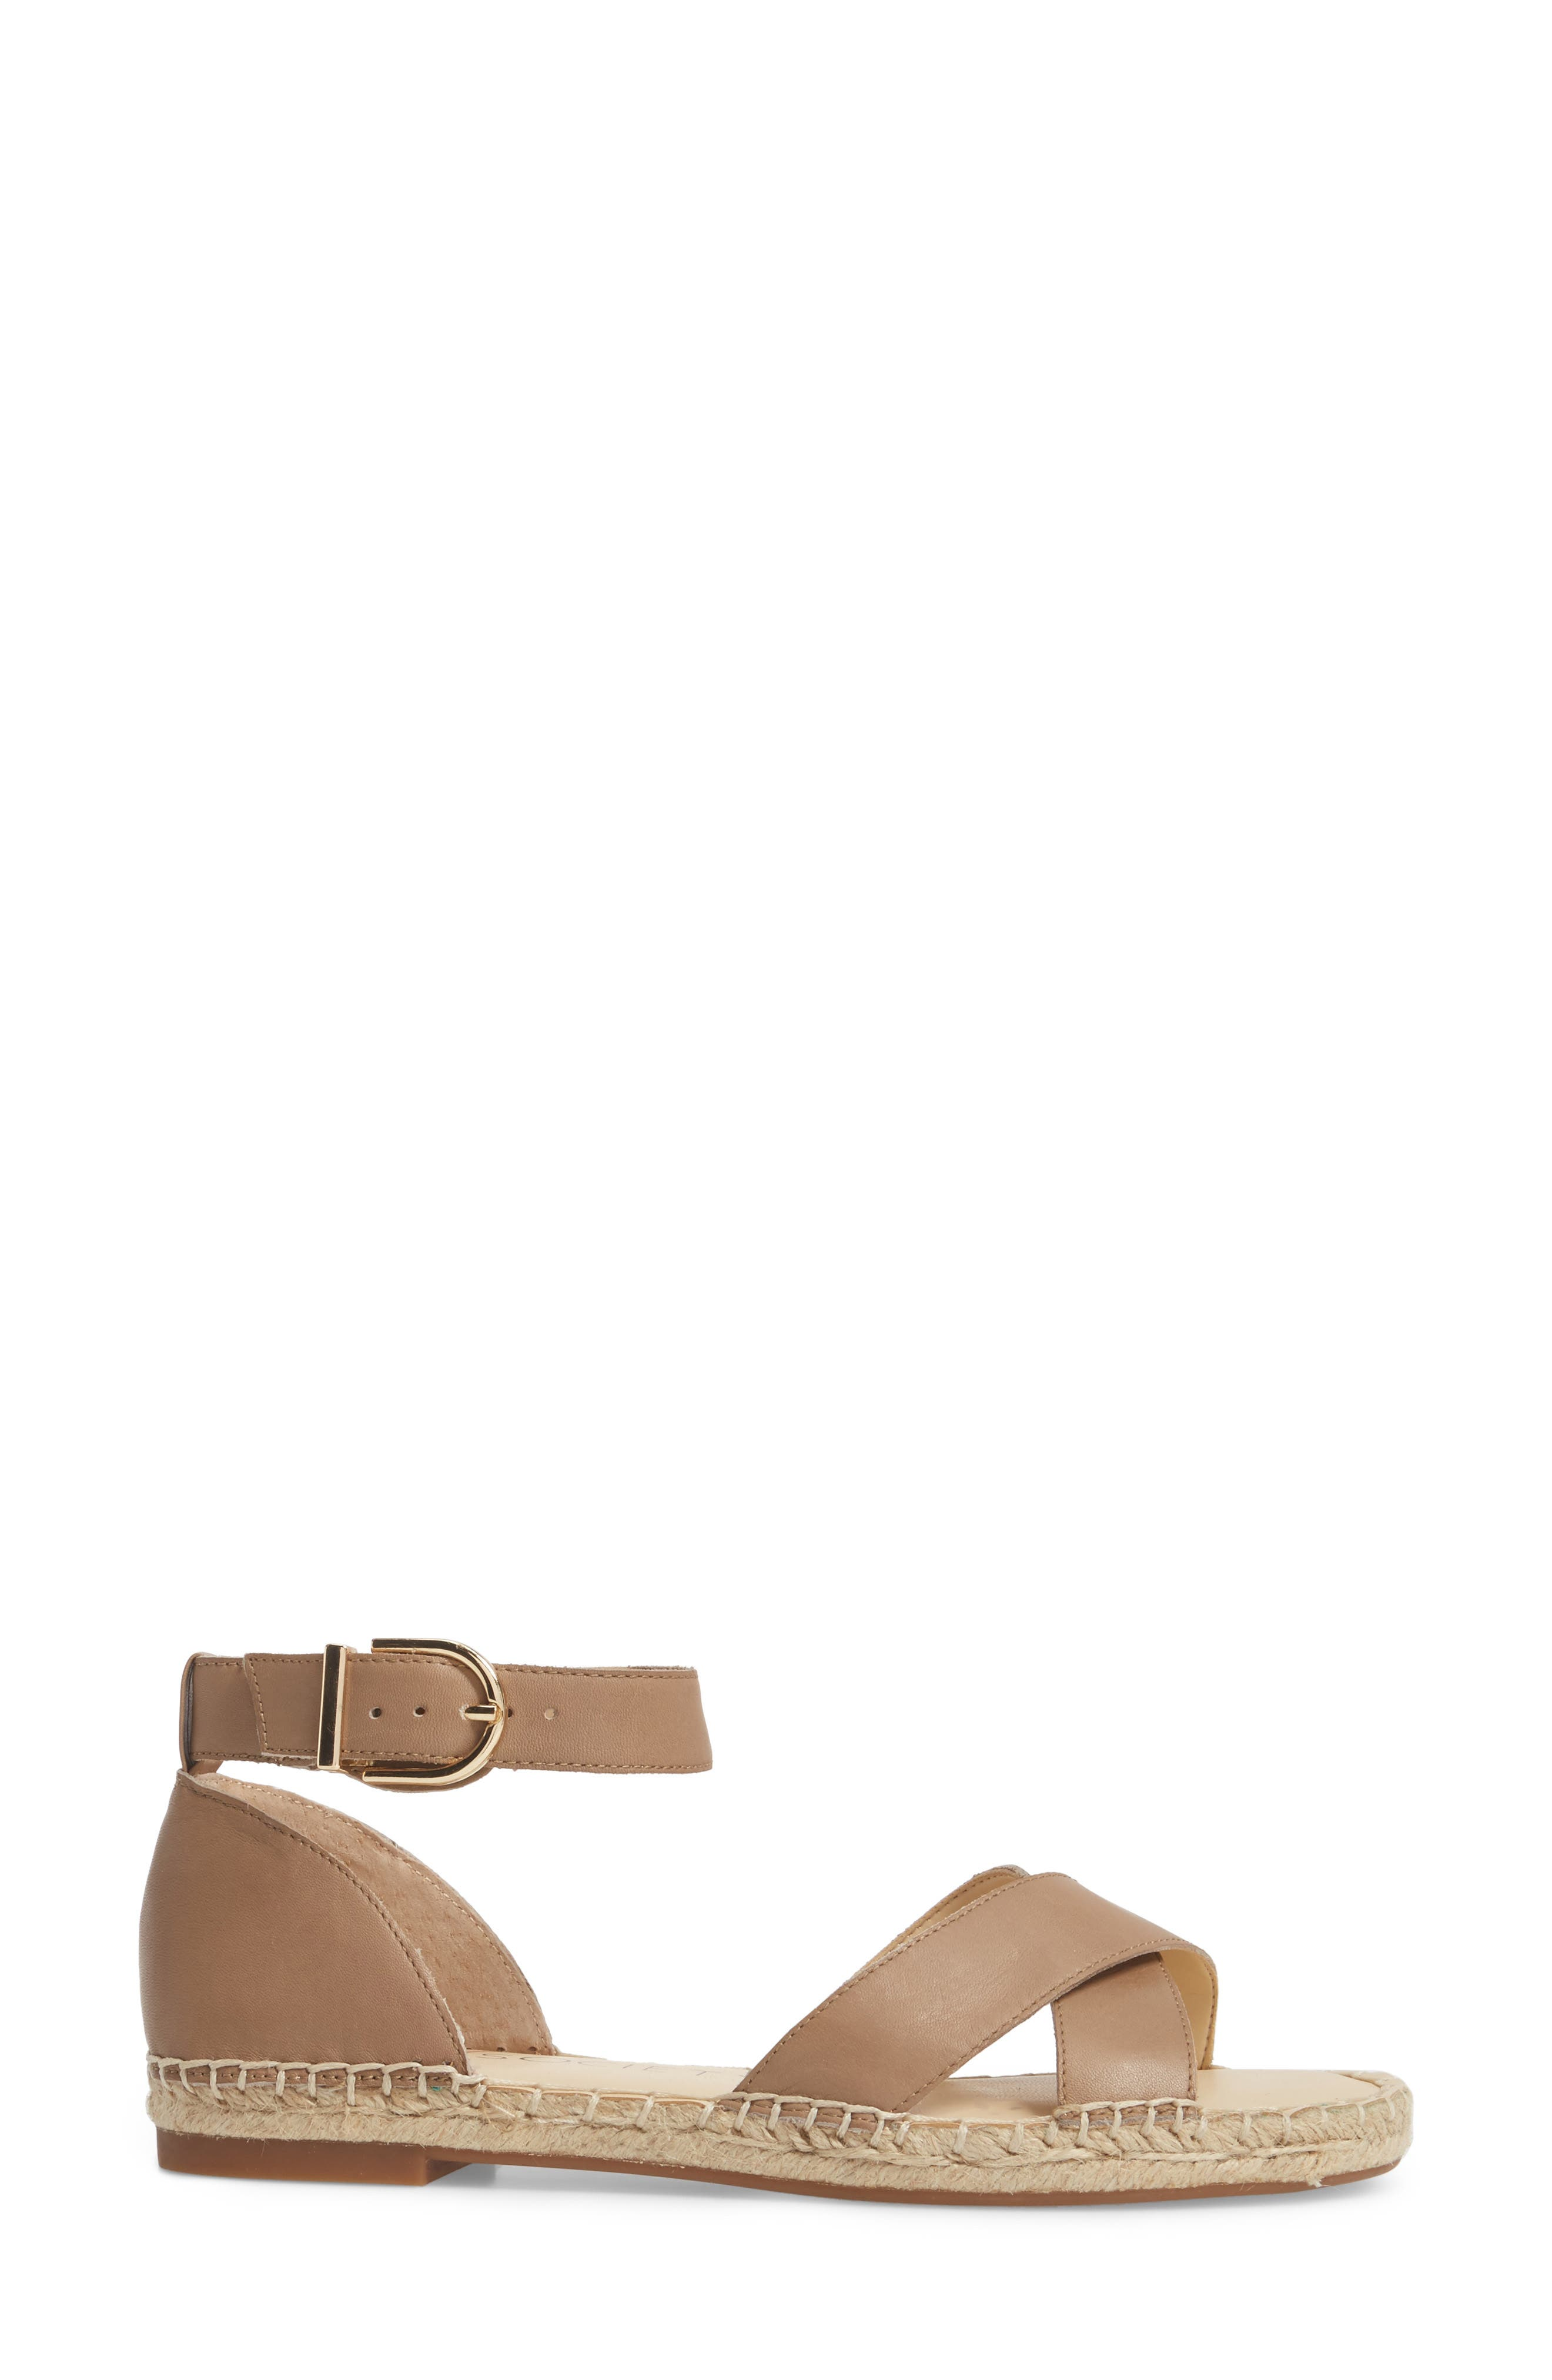 Saundra Espadrille Sandal,                             Alternate thumbnail 10, color,